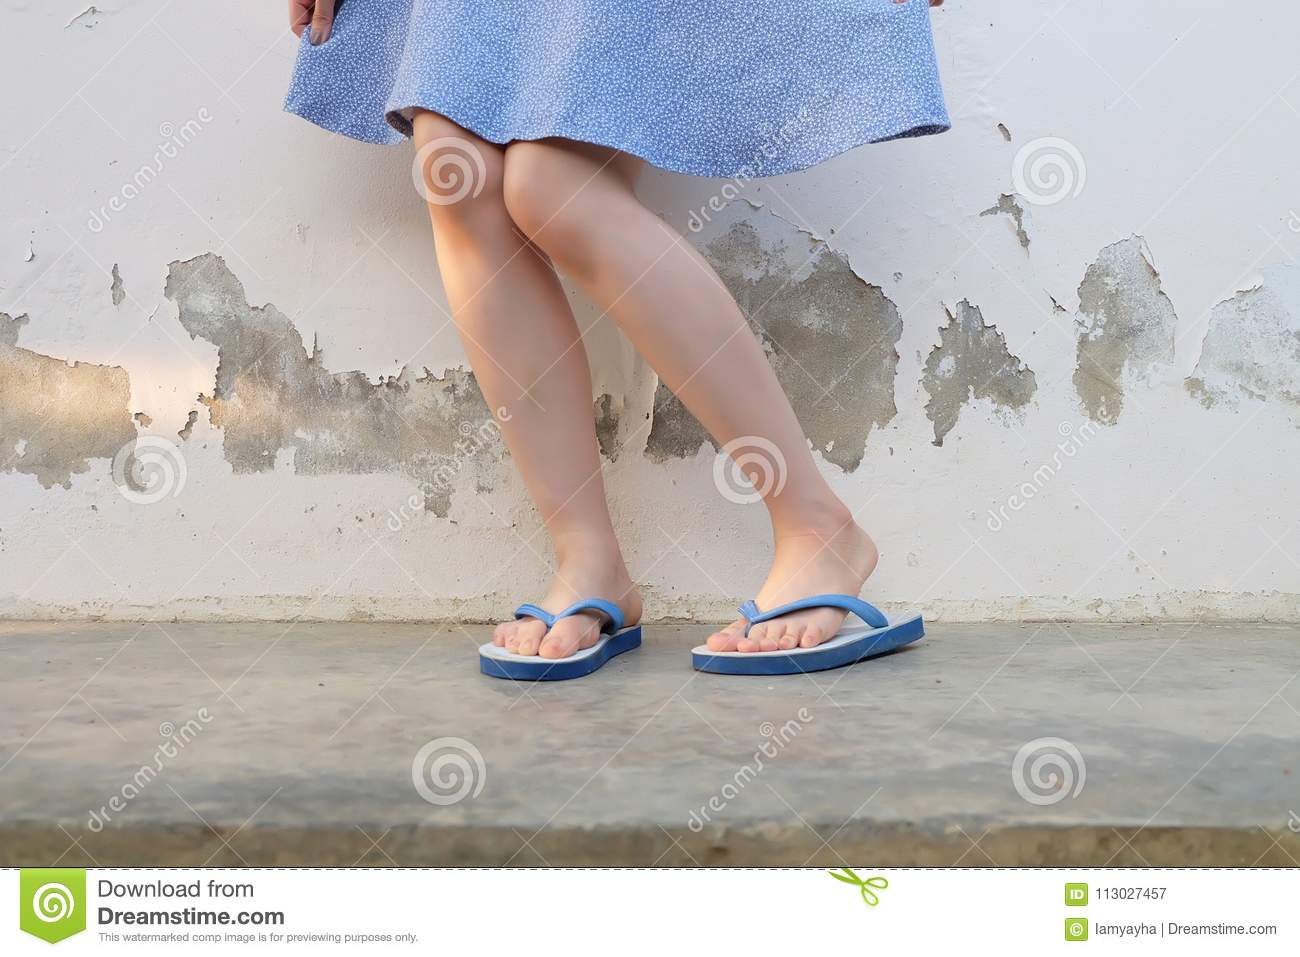 fc1b337fc241 Woman Standing Wearing Blue Flip Flop Sandal on The Cement Floor Background  Great For Any Use. More similar stock images